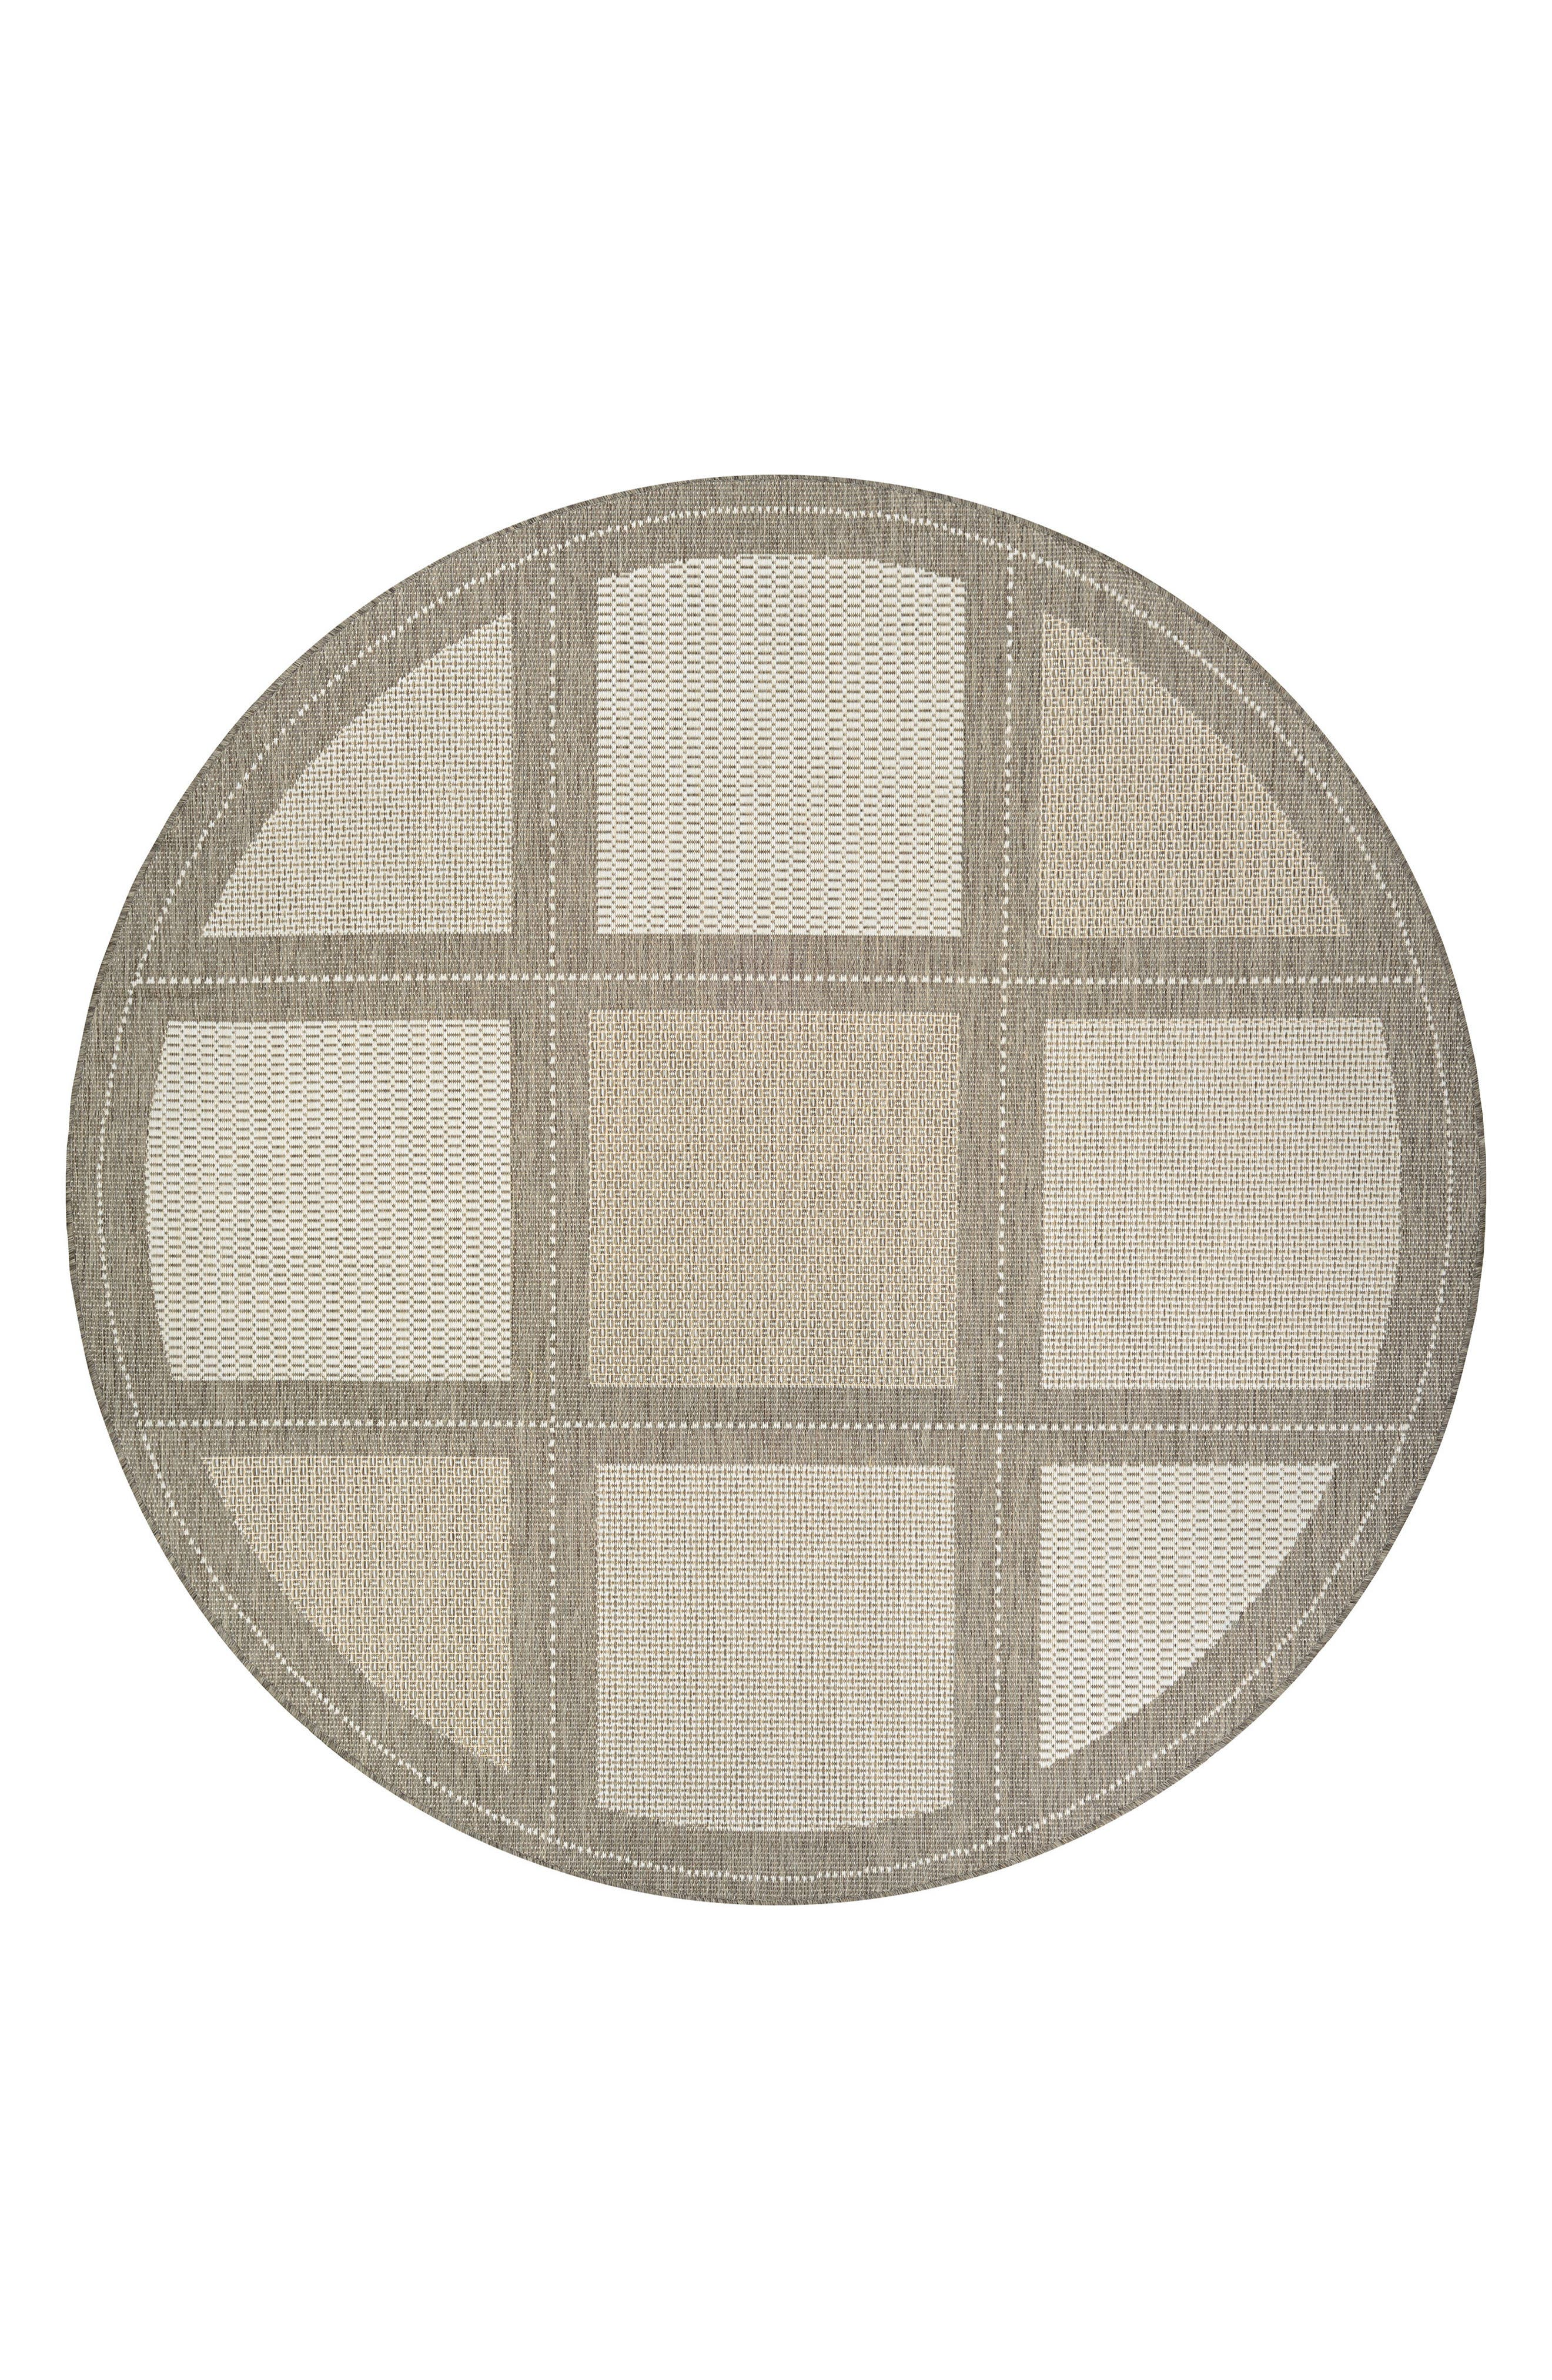 Summit Indoor/Outdoor Rug,                         Main,                         color, Champagne/ Taupe